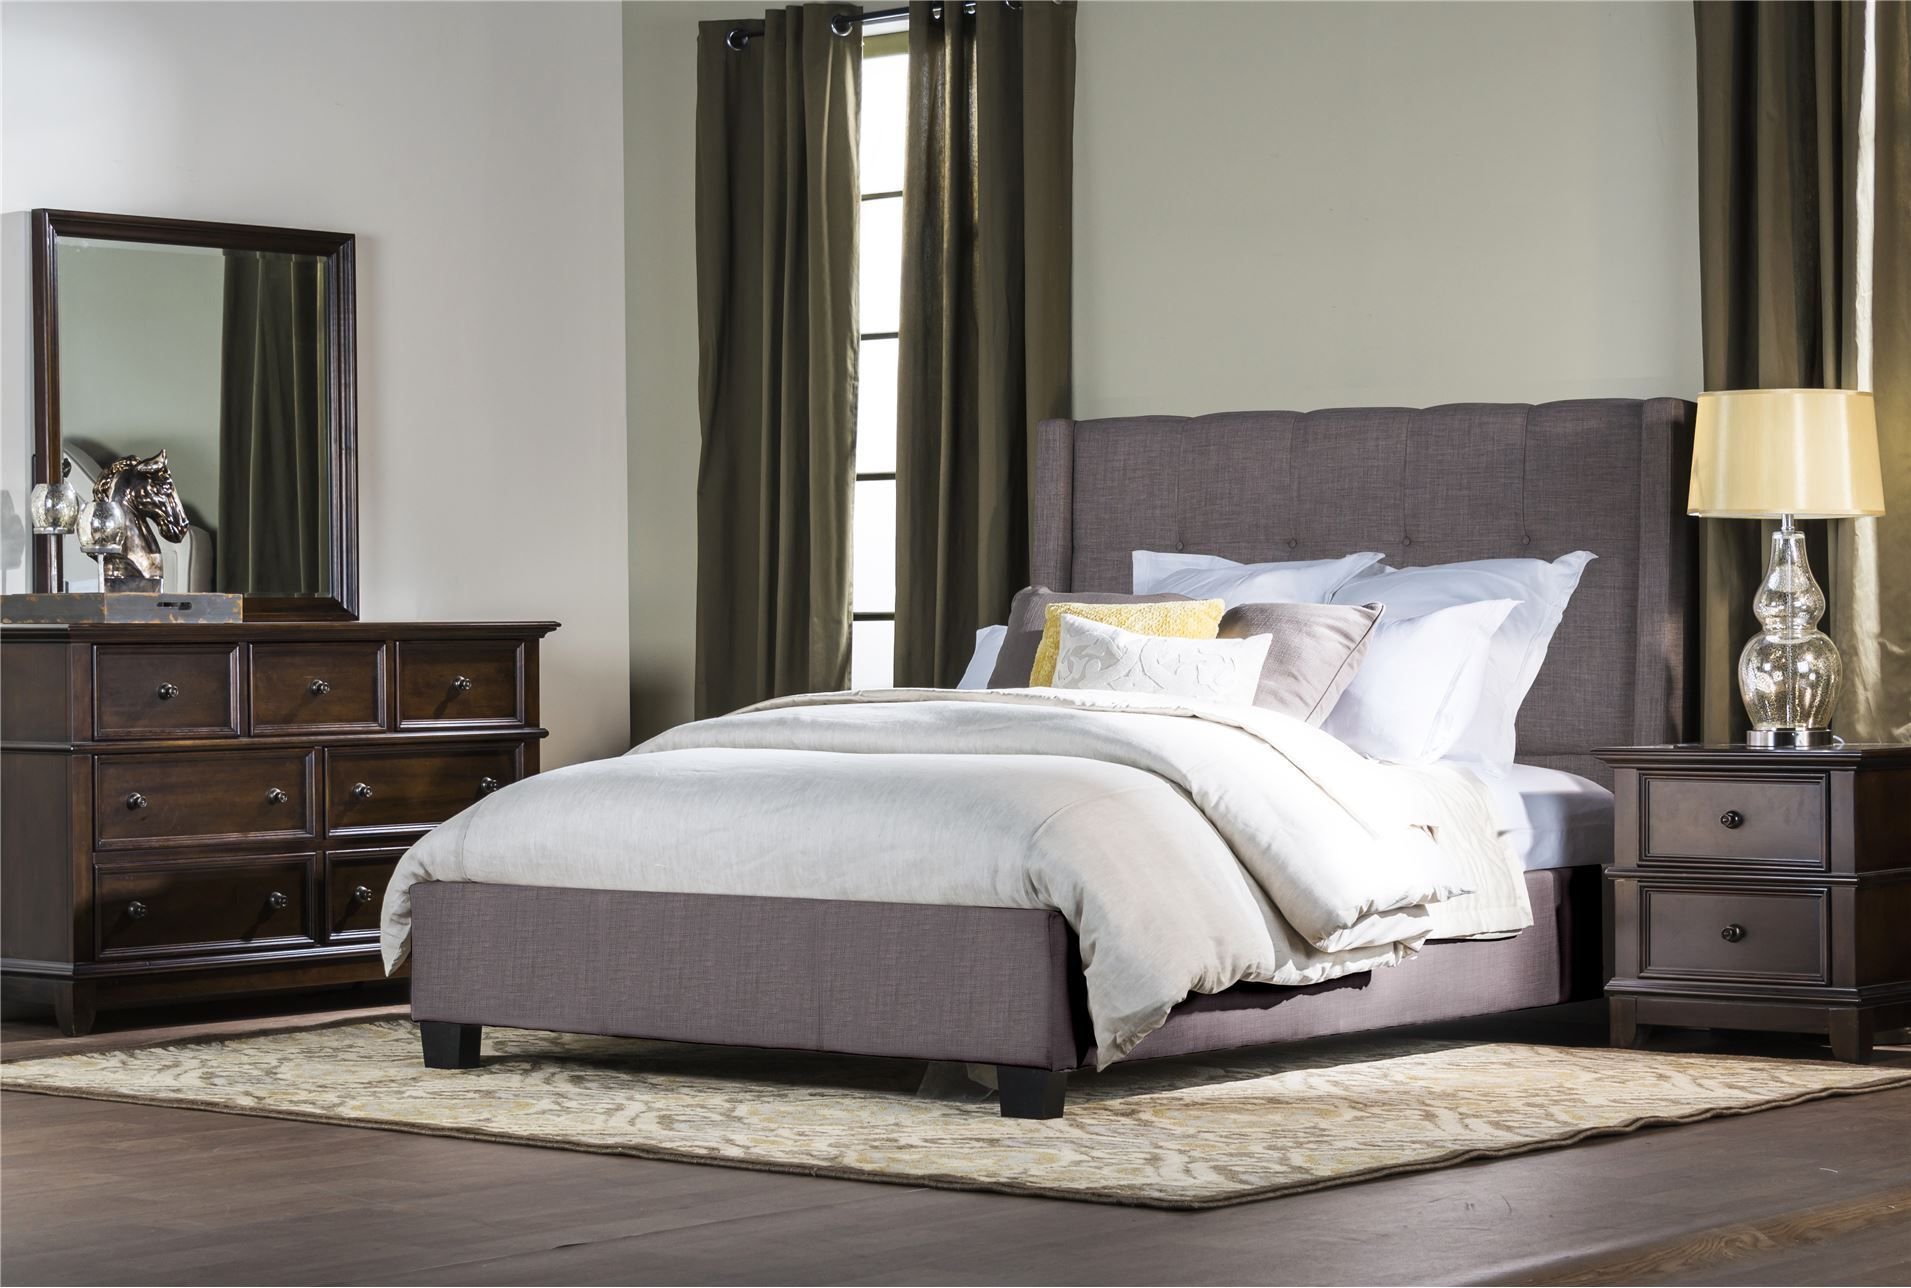 Damon II Queen Upholstered Platform Bed | Platform beds ...